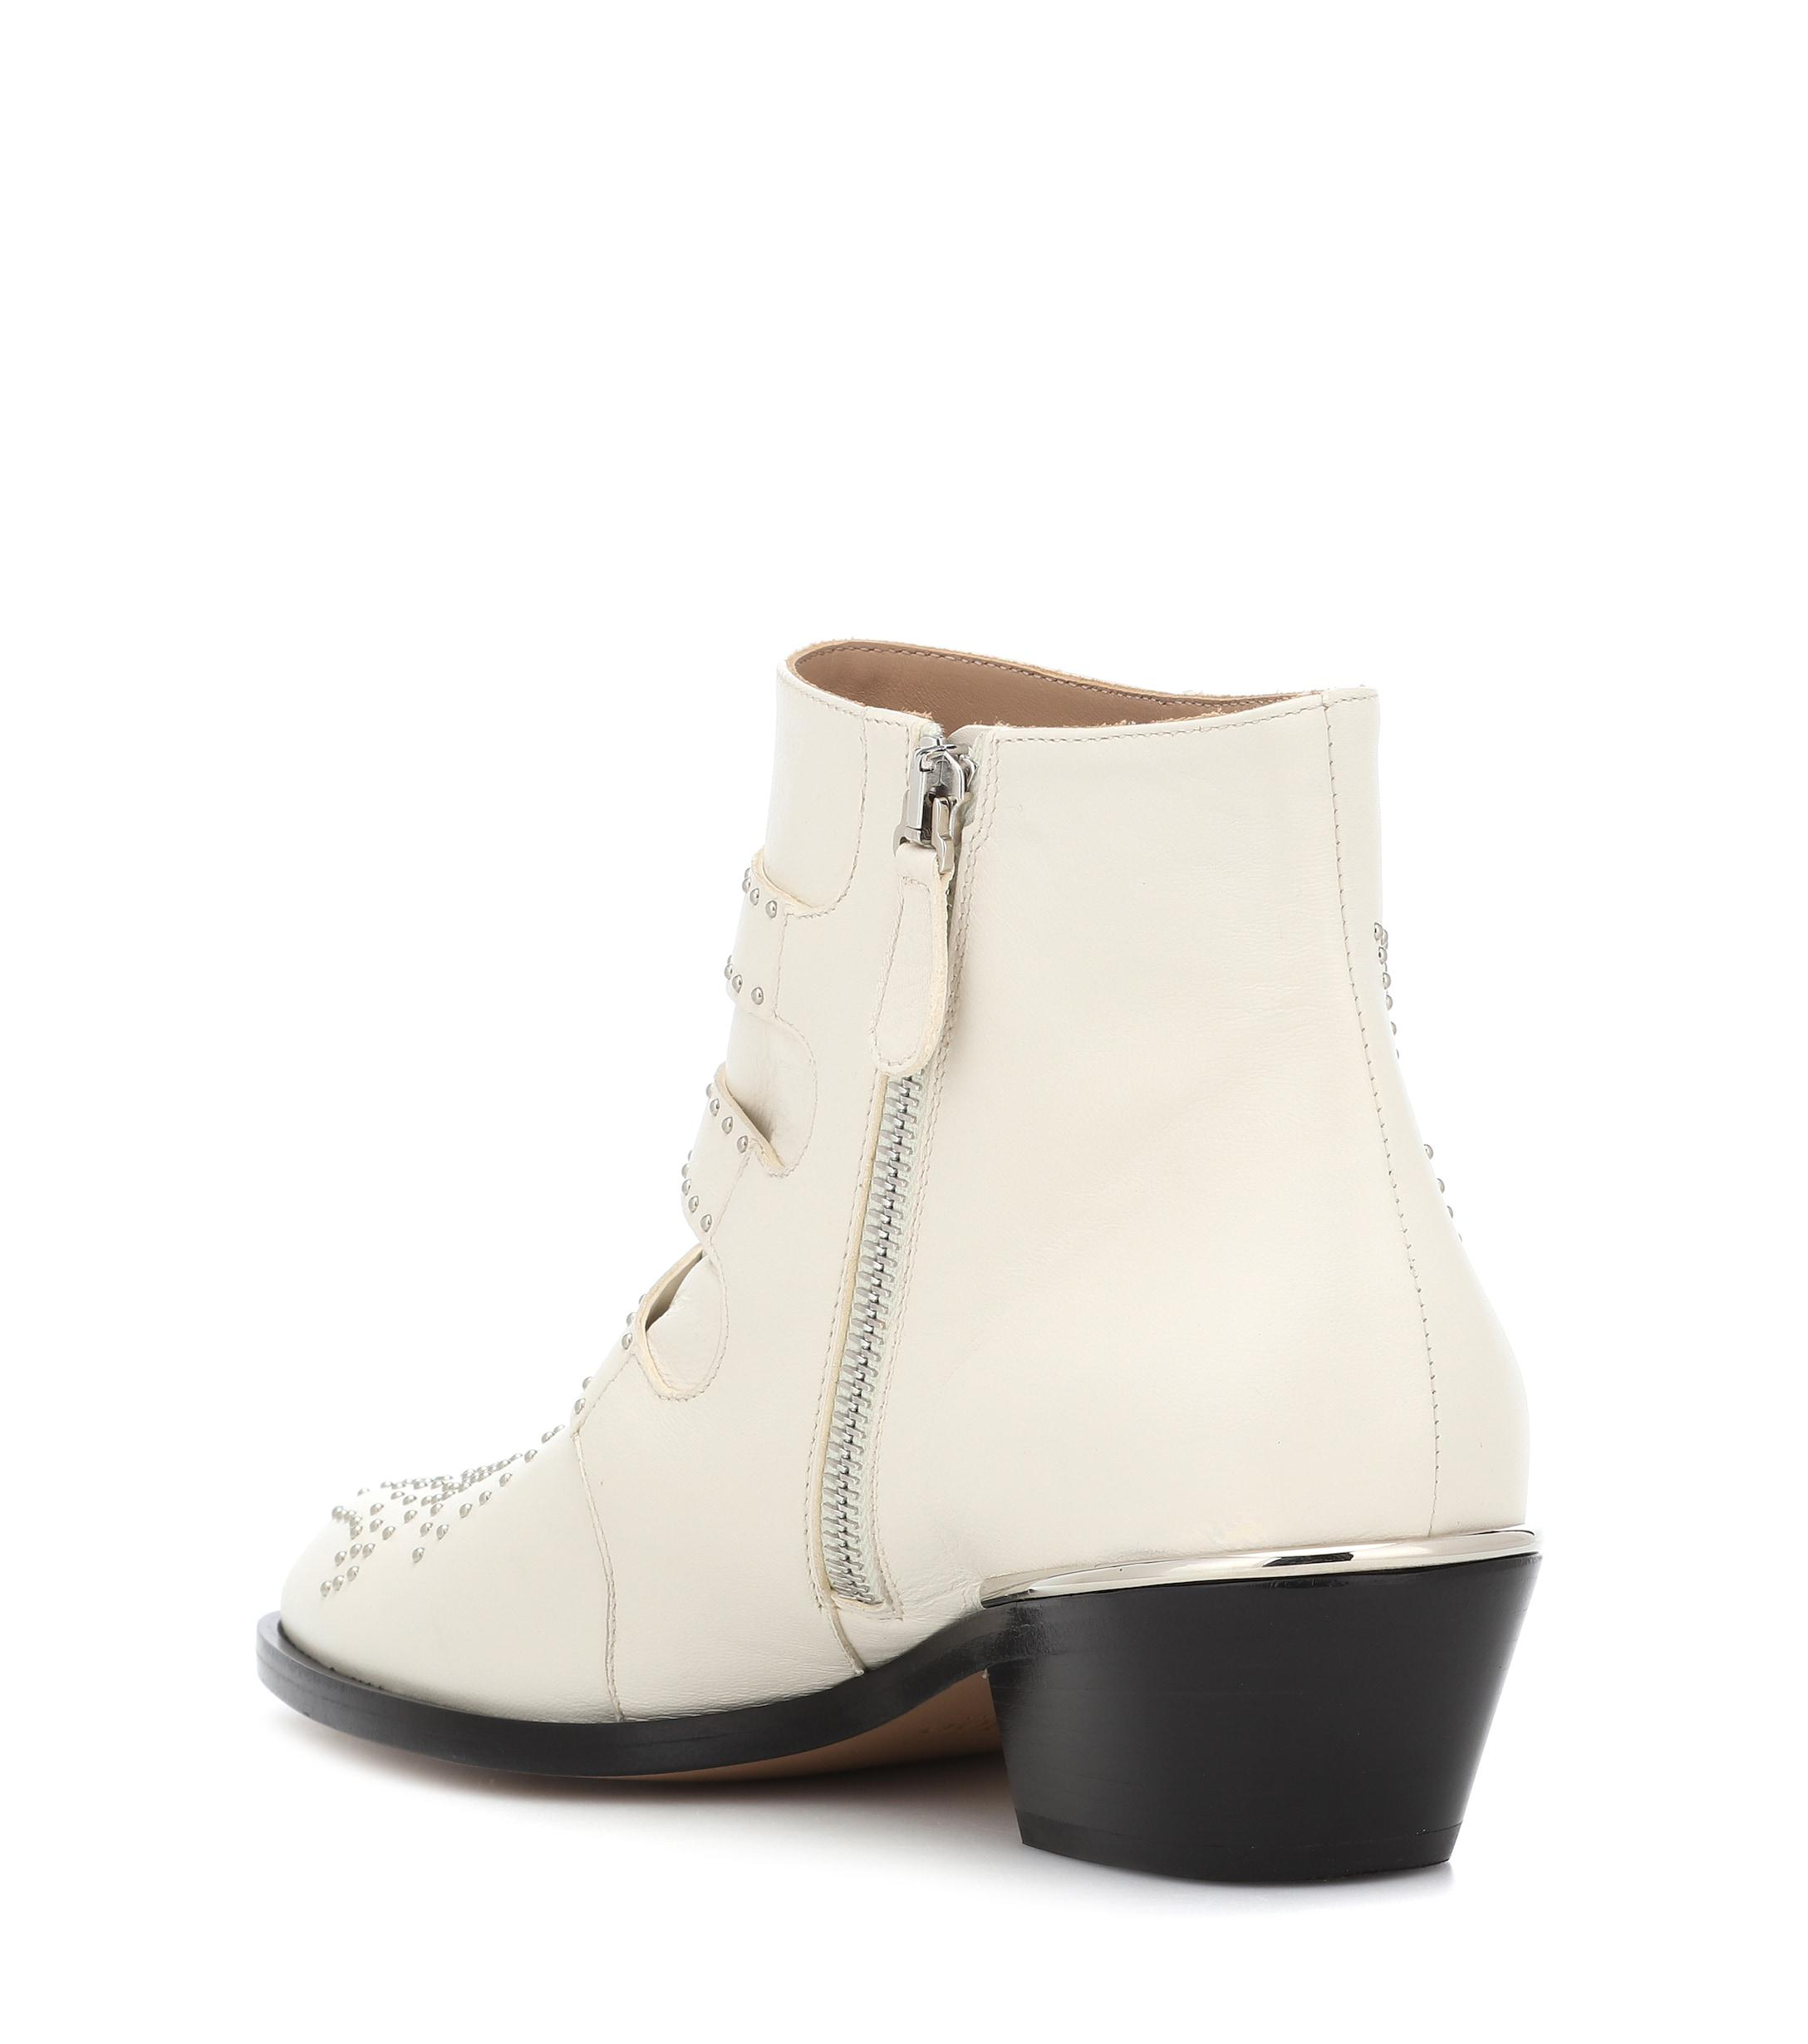 fc094ff0654c Chloé - White Susanna Studded Leather Ankle Boots - Lyst. View fullscreen